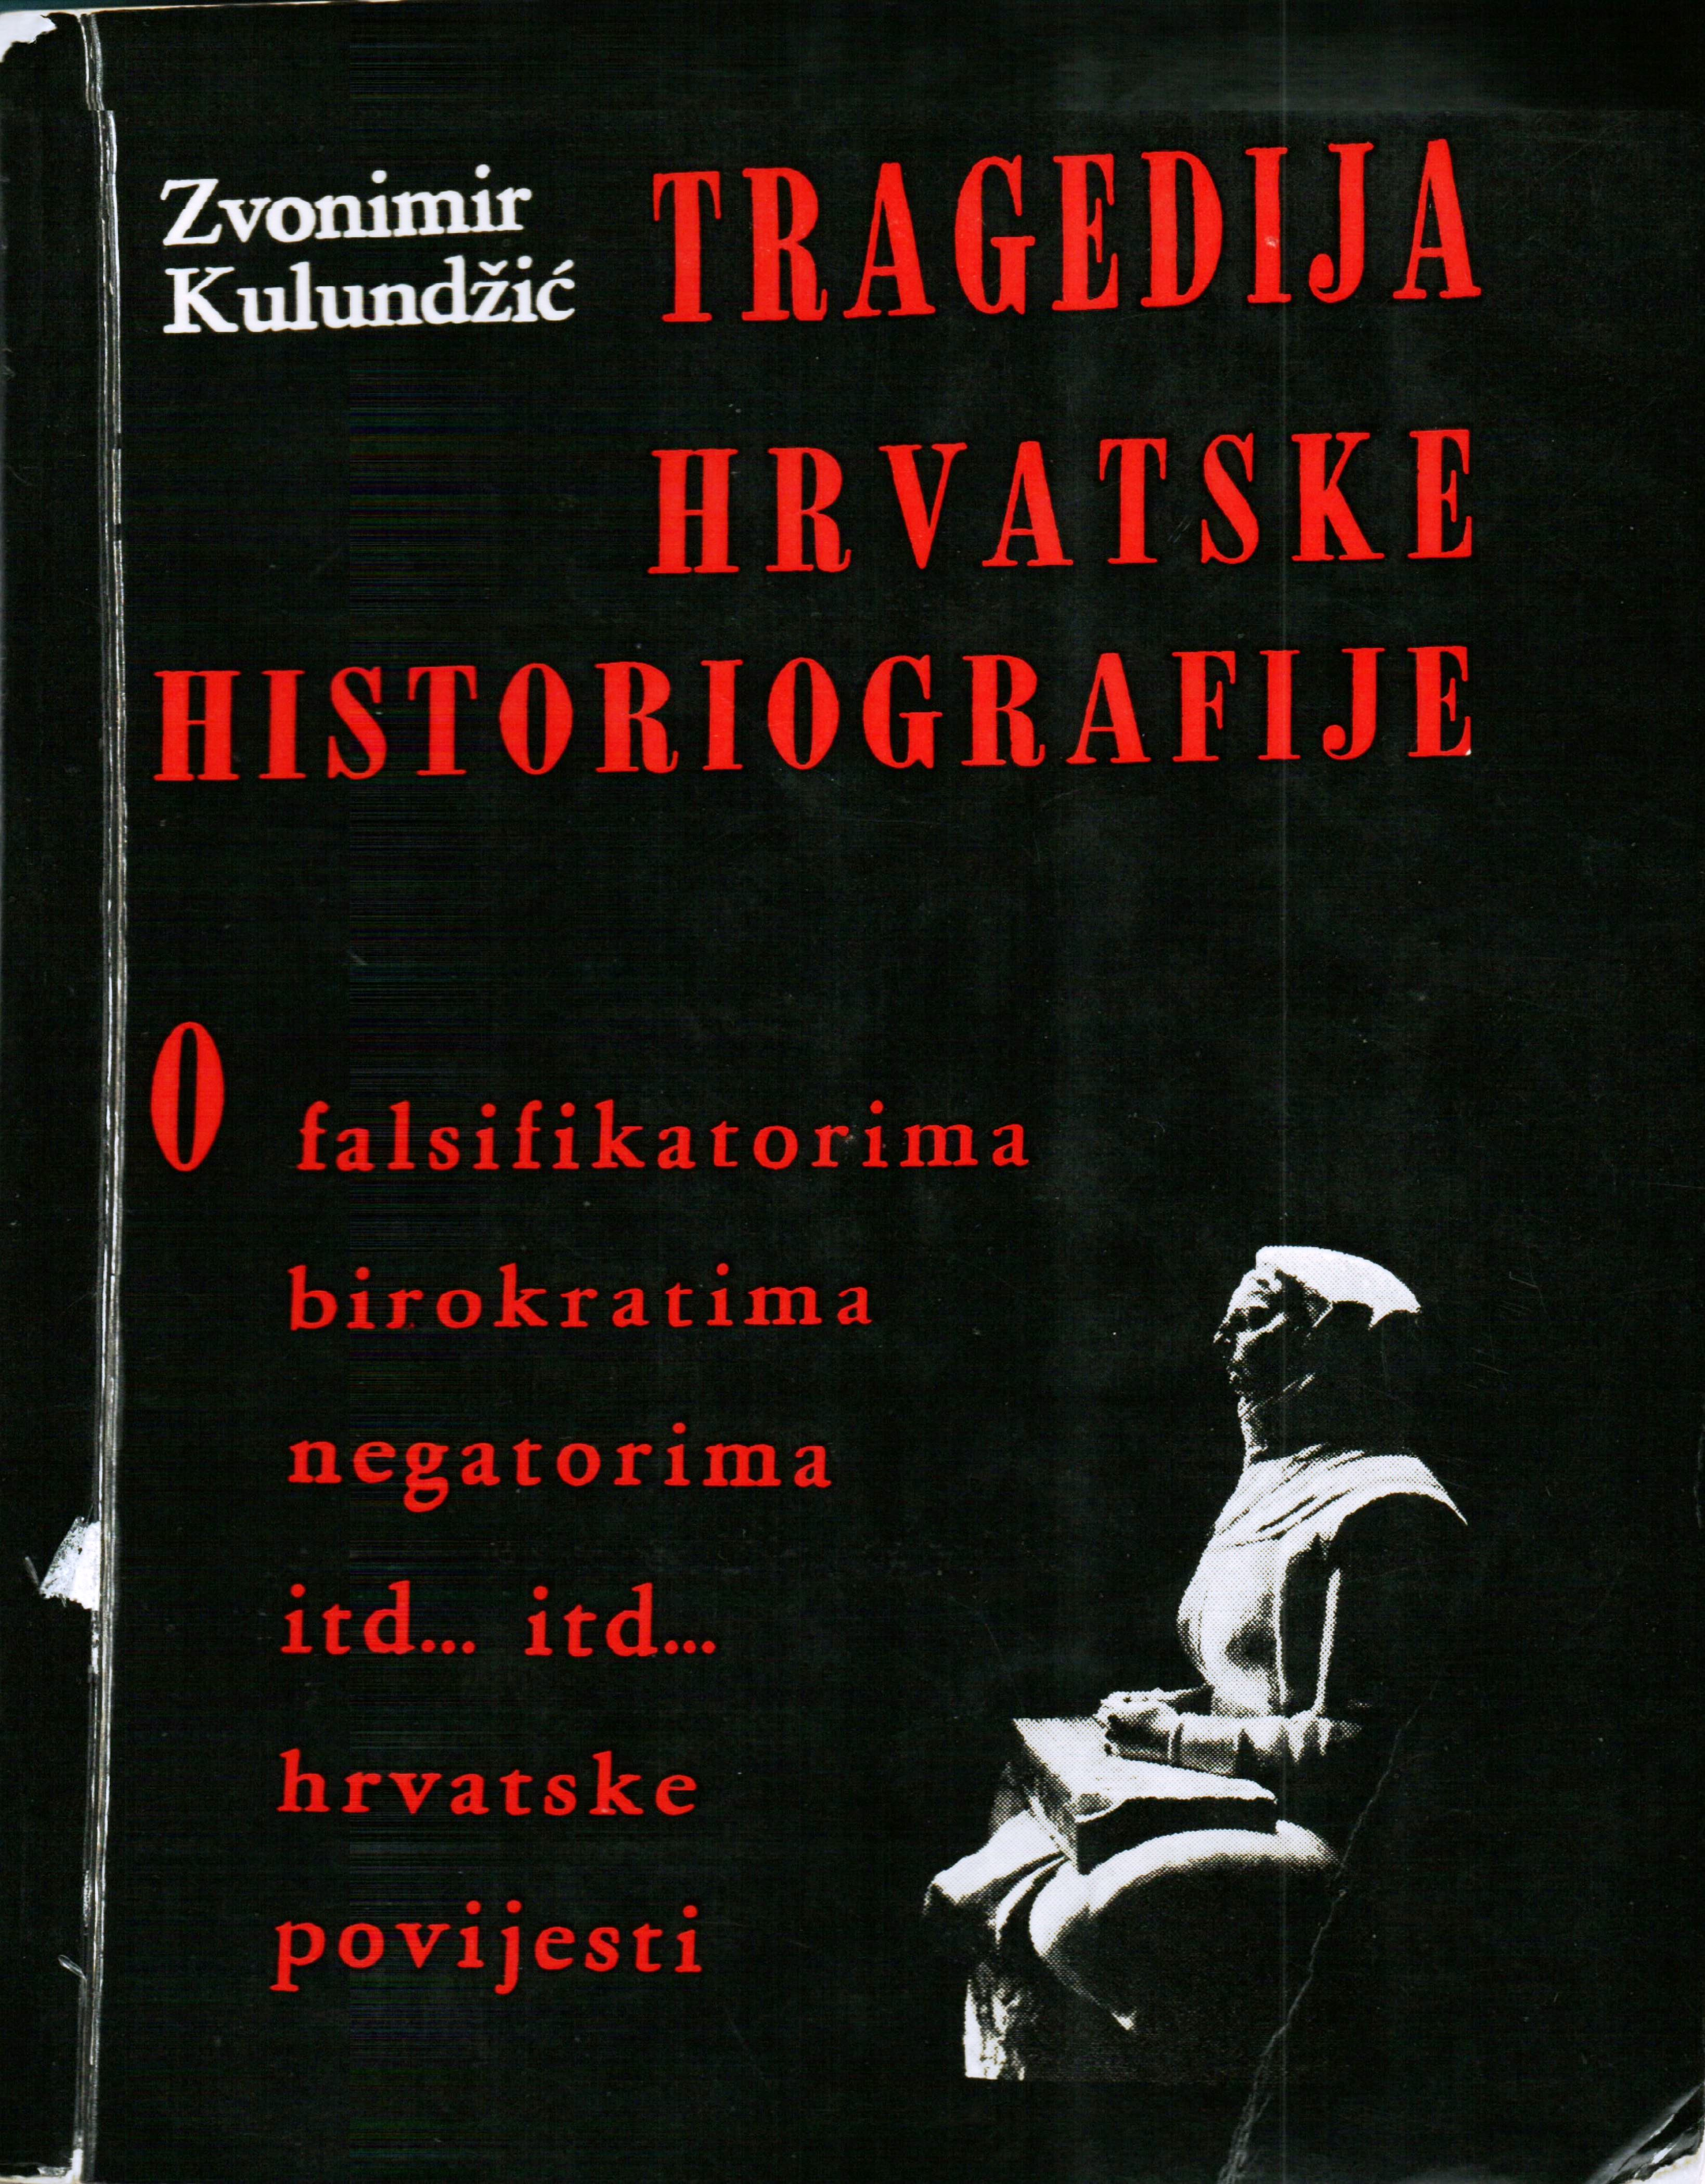 Kulundžić, Zvonimir. Tragedy of Croatian Historiography: On the forgers, bureaucrats, deniers, etc ... etc ... of Croatian history (Tragedija hrvatske historiografije: o falsifikatorima, birokratima, negatorima, itd... itd... hrvatske povijesti), 1970. Book